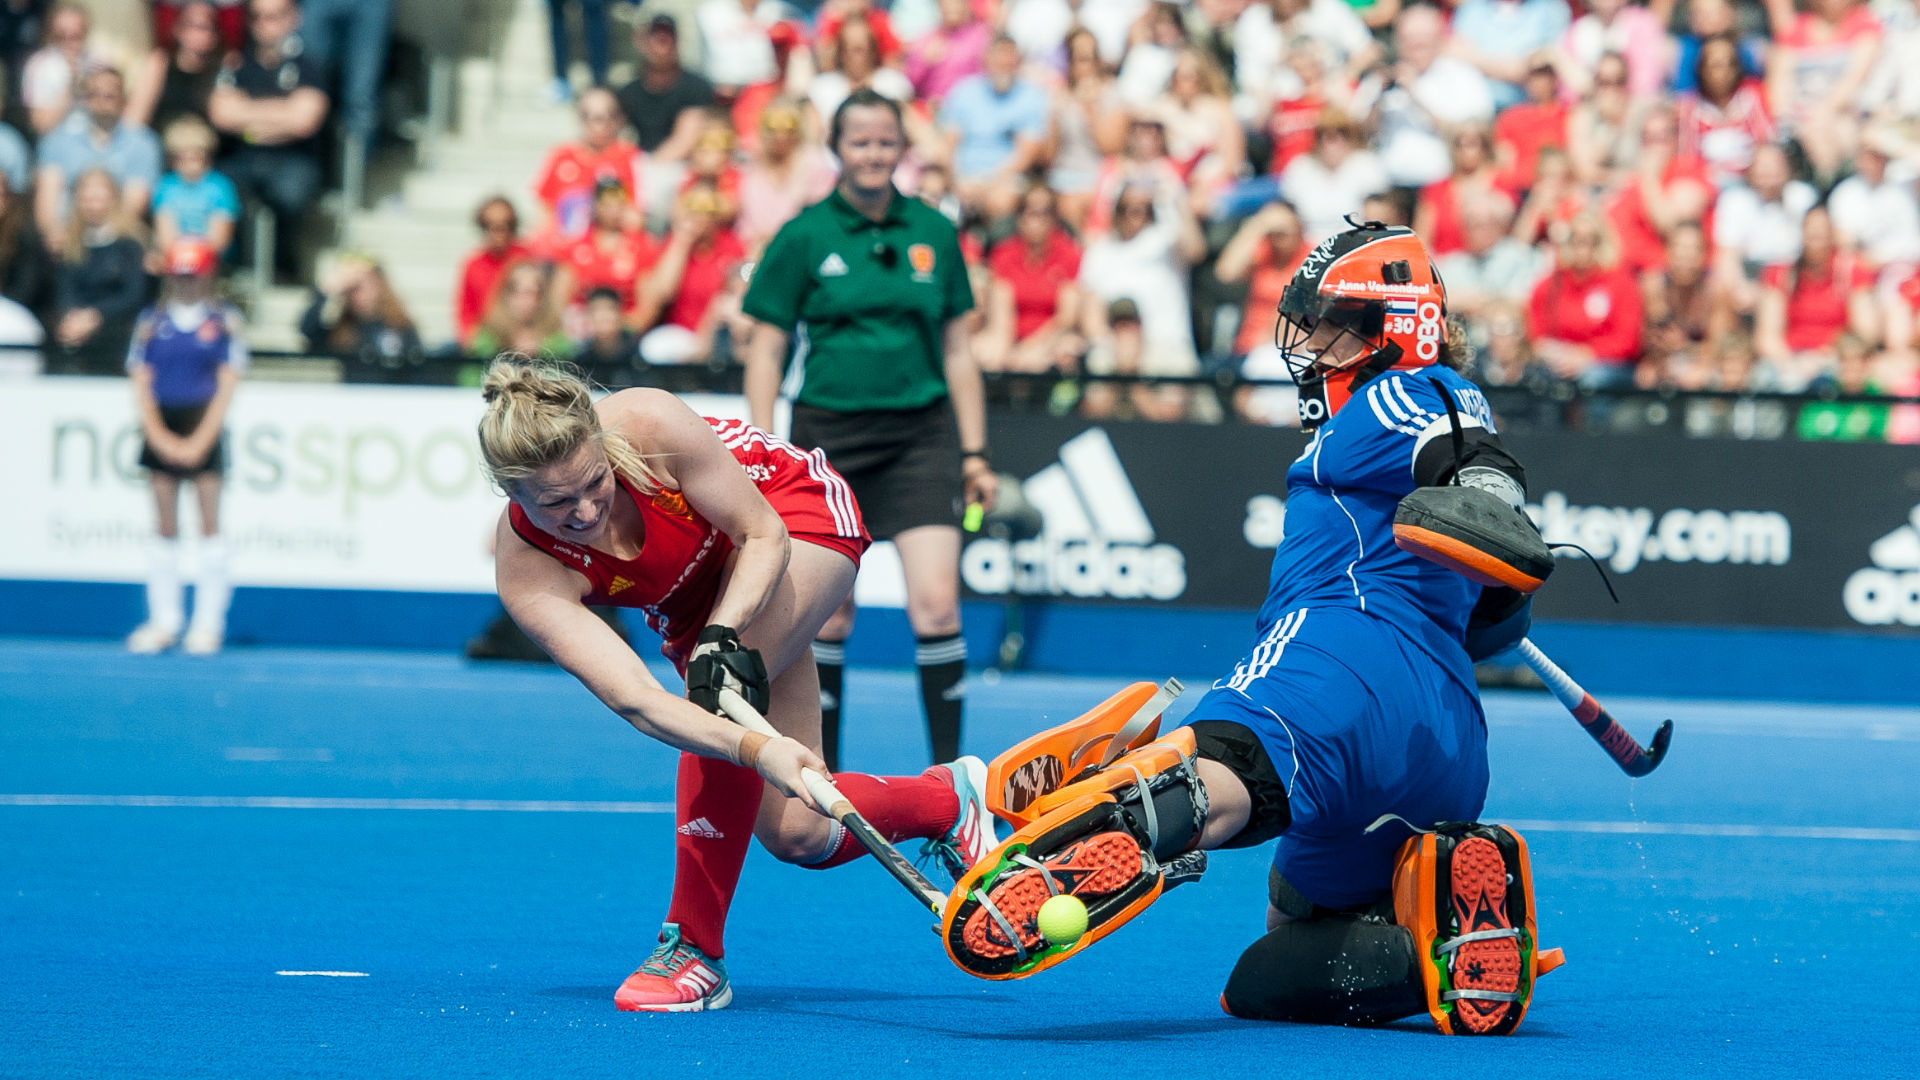 England and the Nethelrands will both be at the Vitality Women's Hockey World Cup 2018. Image courtesy of FIH